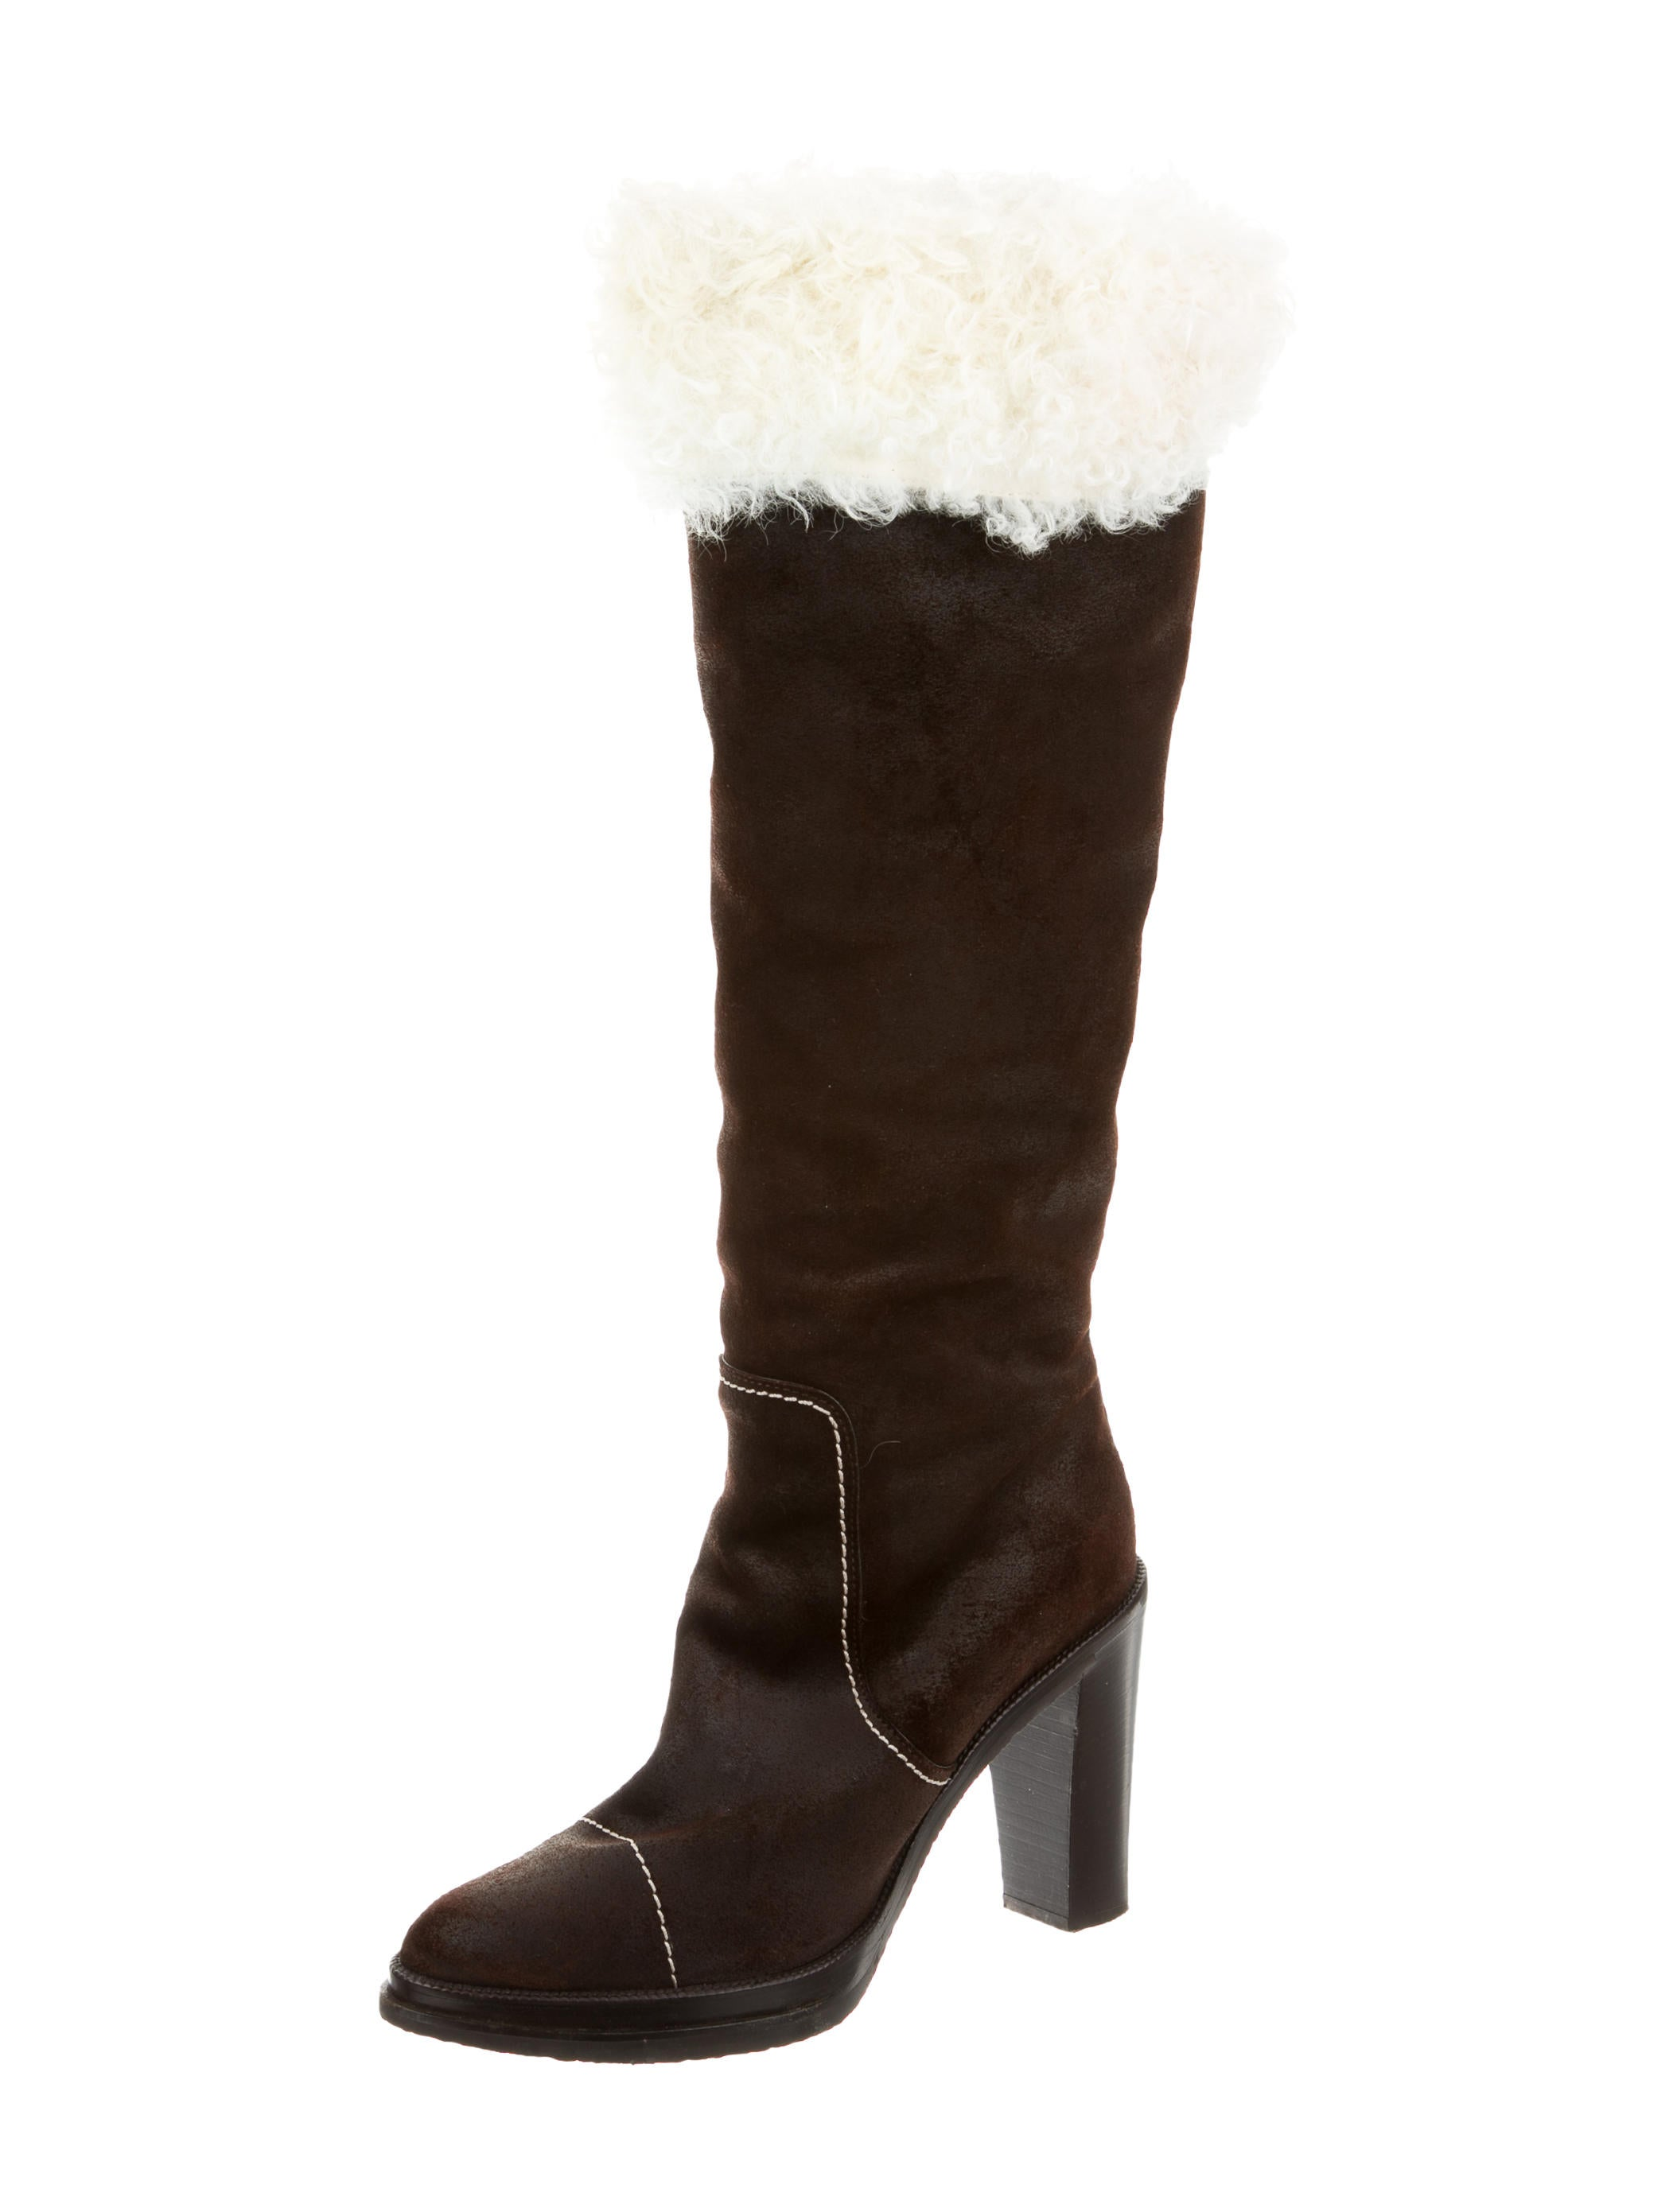 louis vuitton suede the knee boots shoes